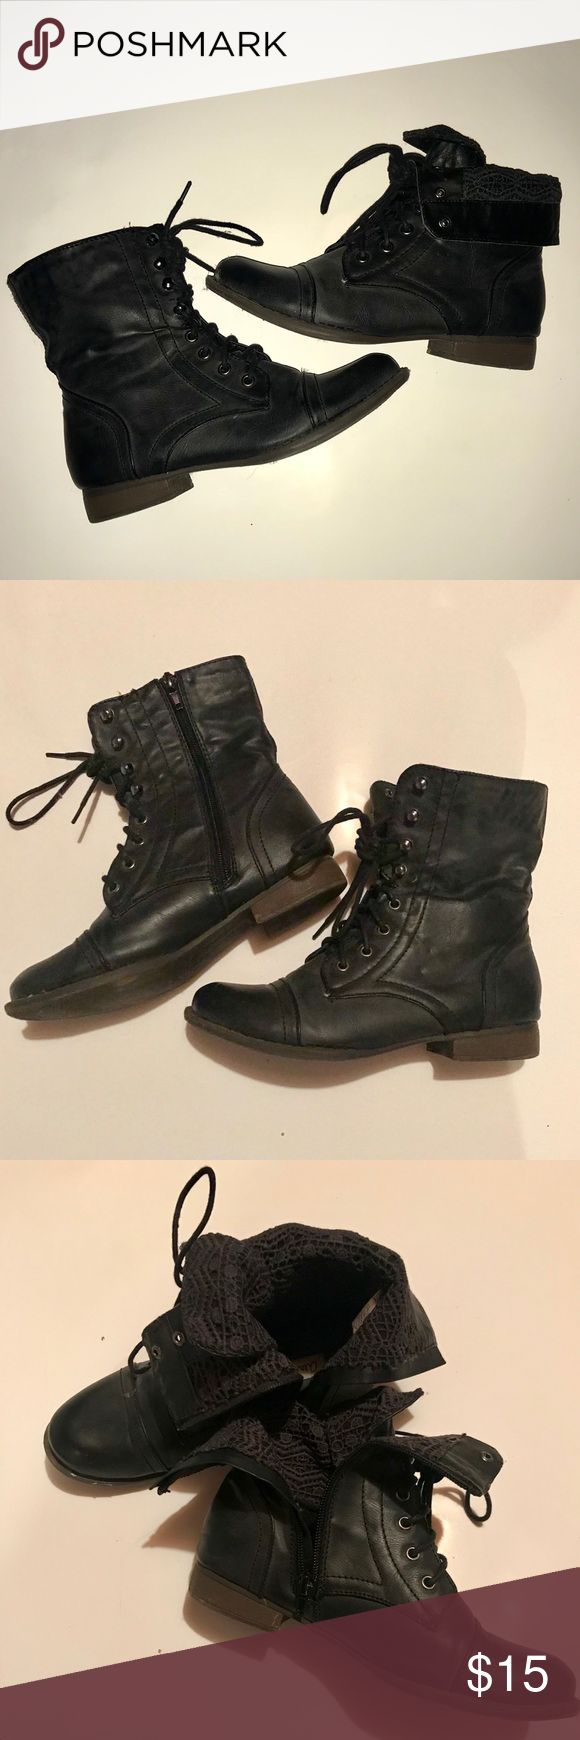 Black Fold-over Lace Combat Boots Black fold over combat boots with lace/crochet design on inside. Side zipper. Only worn a few times so they are in great condition except small scuff on toe of one boot. Aeropostale Shoes Combat & Moto Boots